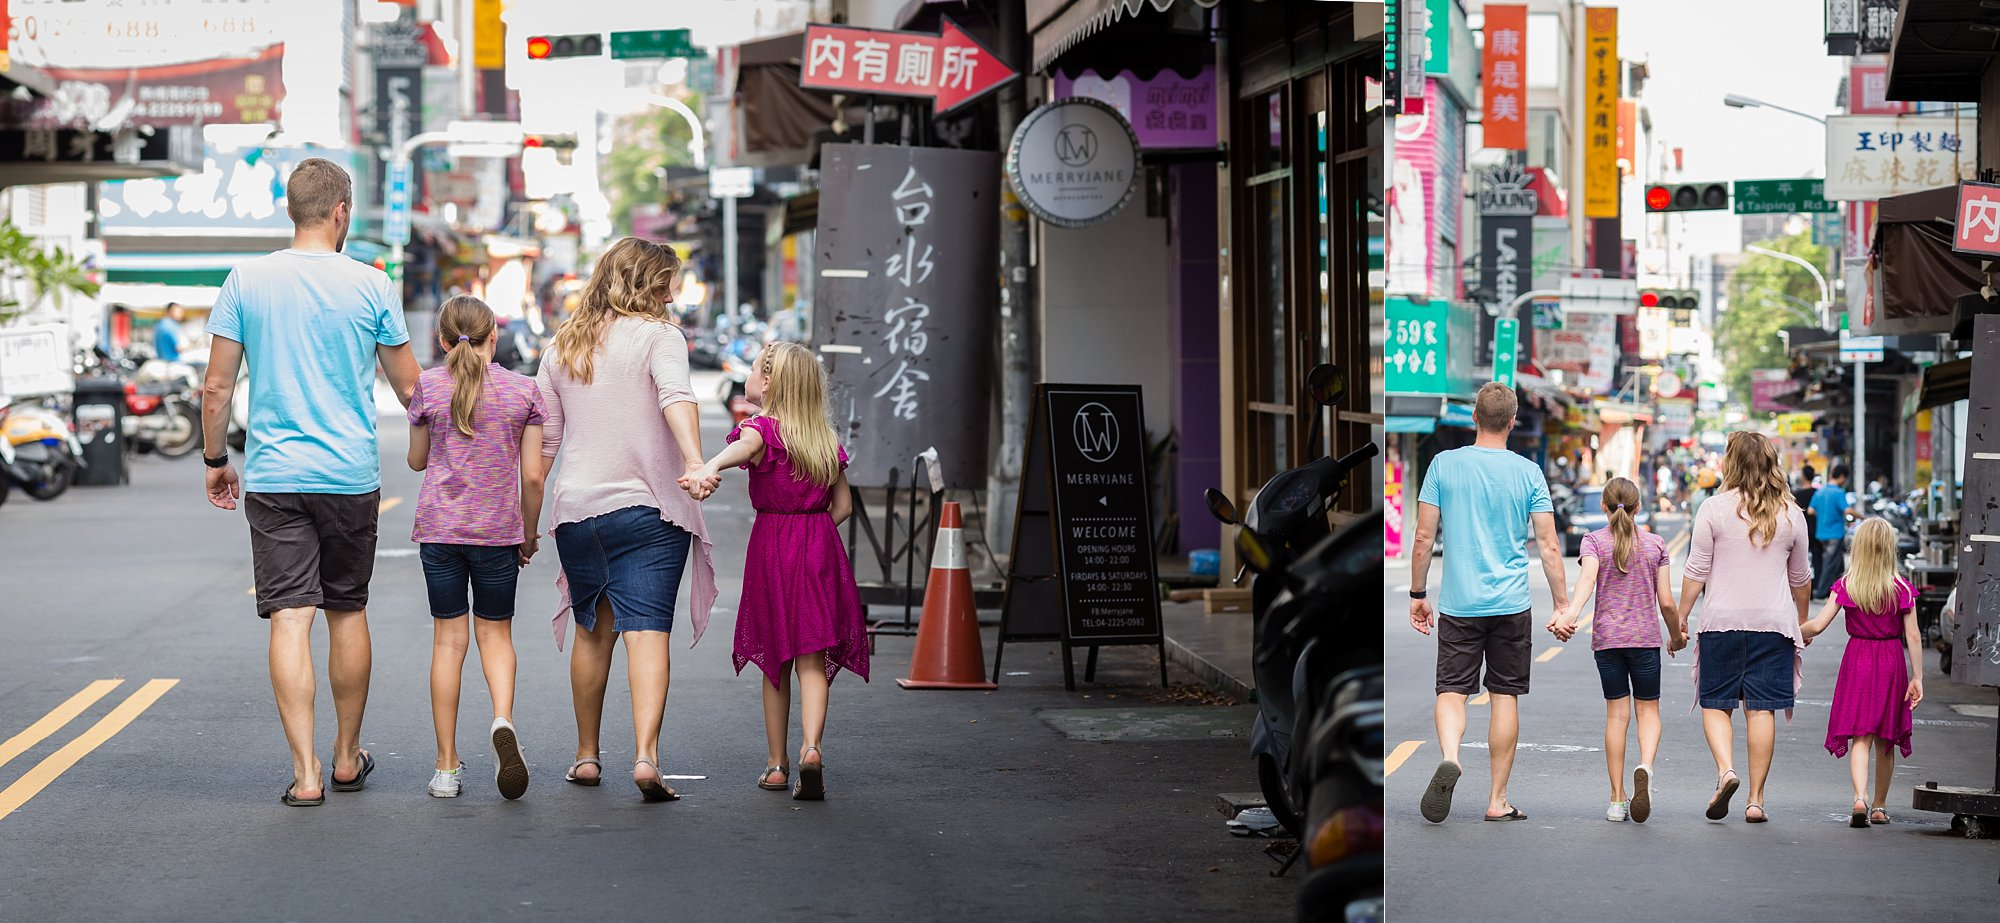 Taichung_Expat_Lifestyle_Urban_Family_Photographer_0030